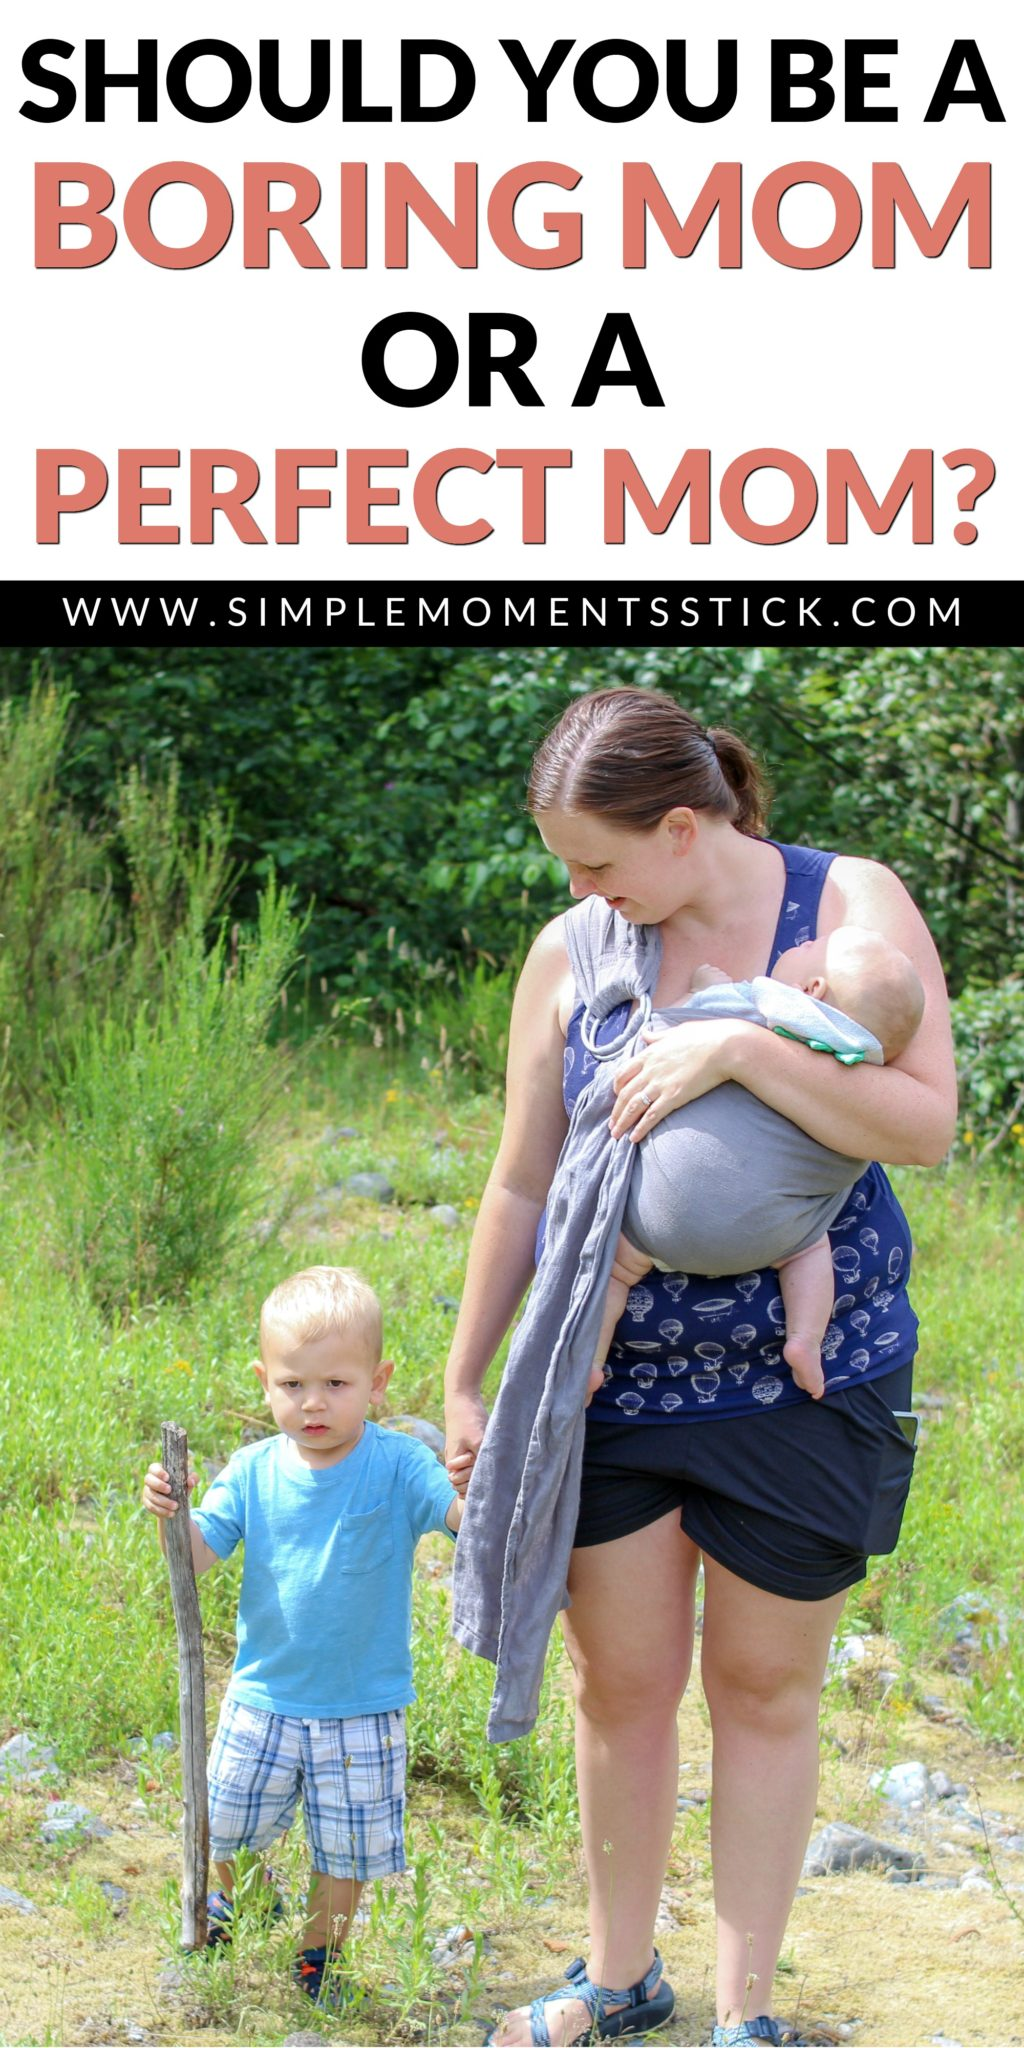 Woman holding toddler's hand and carrying a baby. Toddler is carrying a large walking stick and greenery is in the background. Text says - Should You be a Boring Mom or a Perfect Mom?